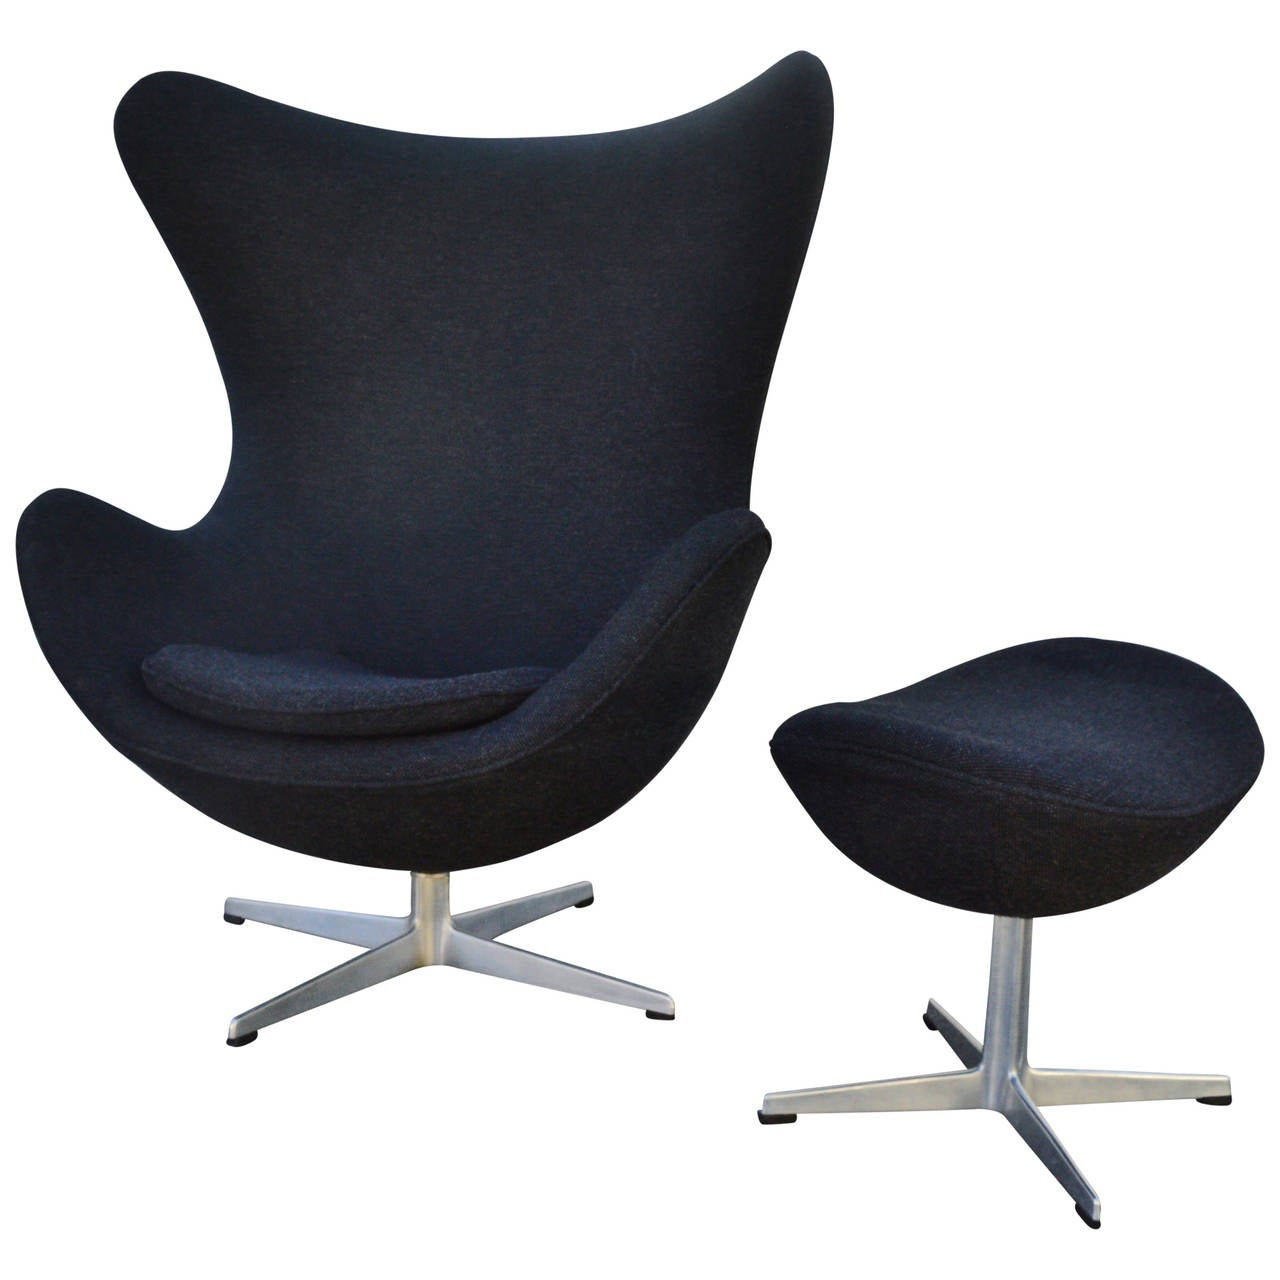 Iconic arne jacobsen for fritz hansen egg chair and Iconic chair and ottoman